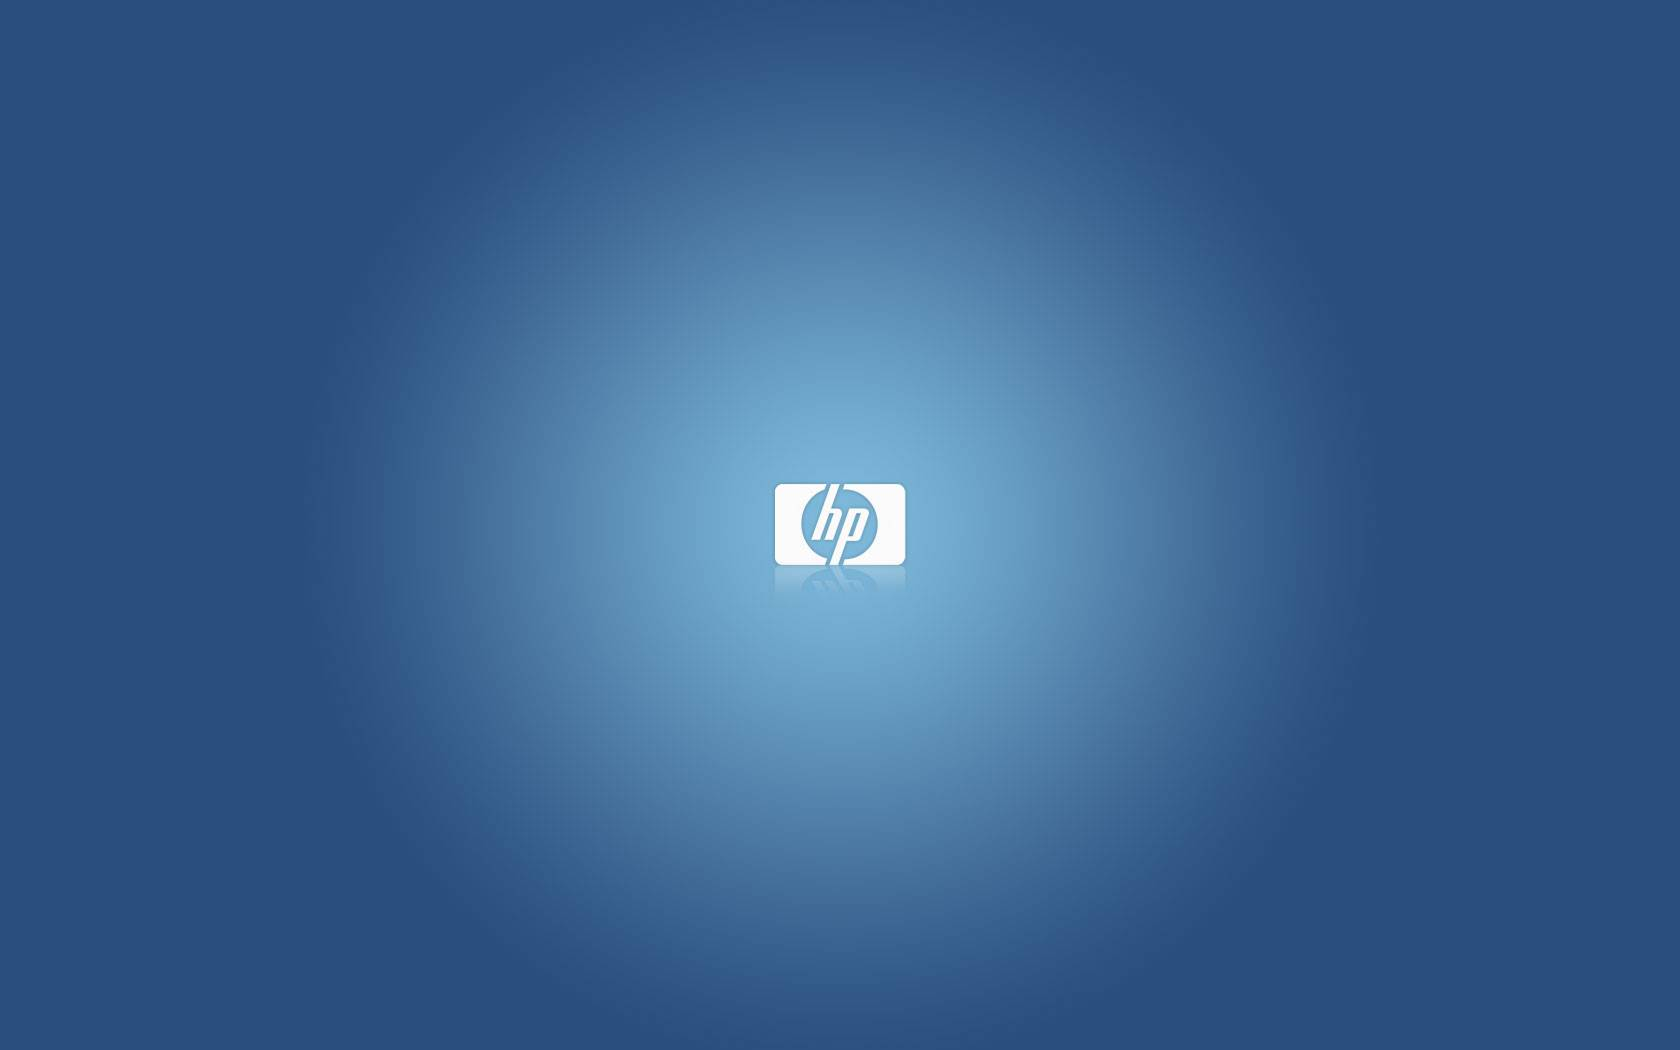 HP Screensavers and Wallpaper  WallpaperSafari